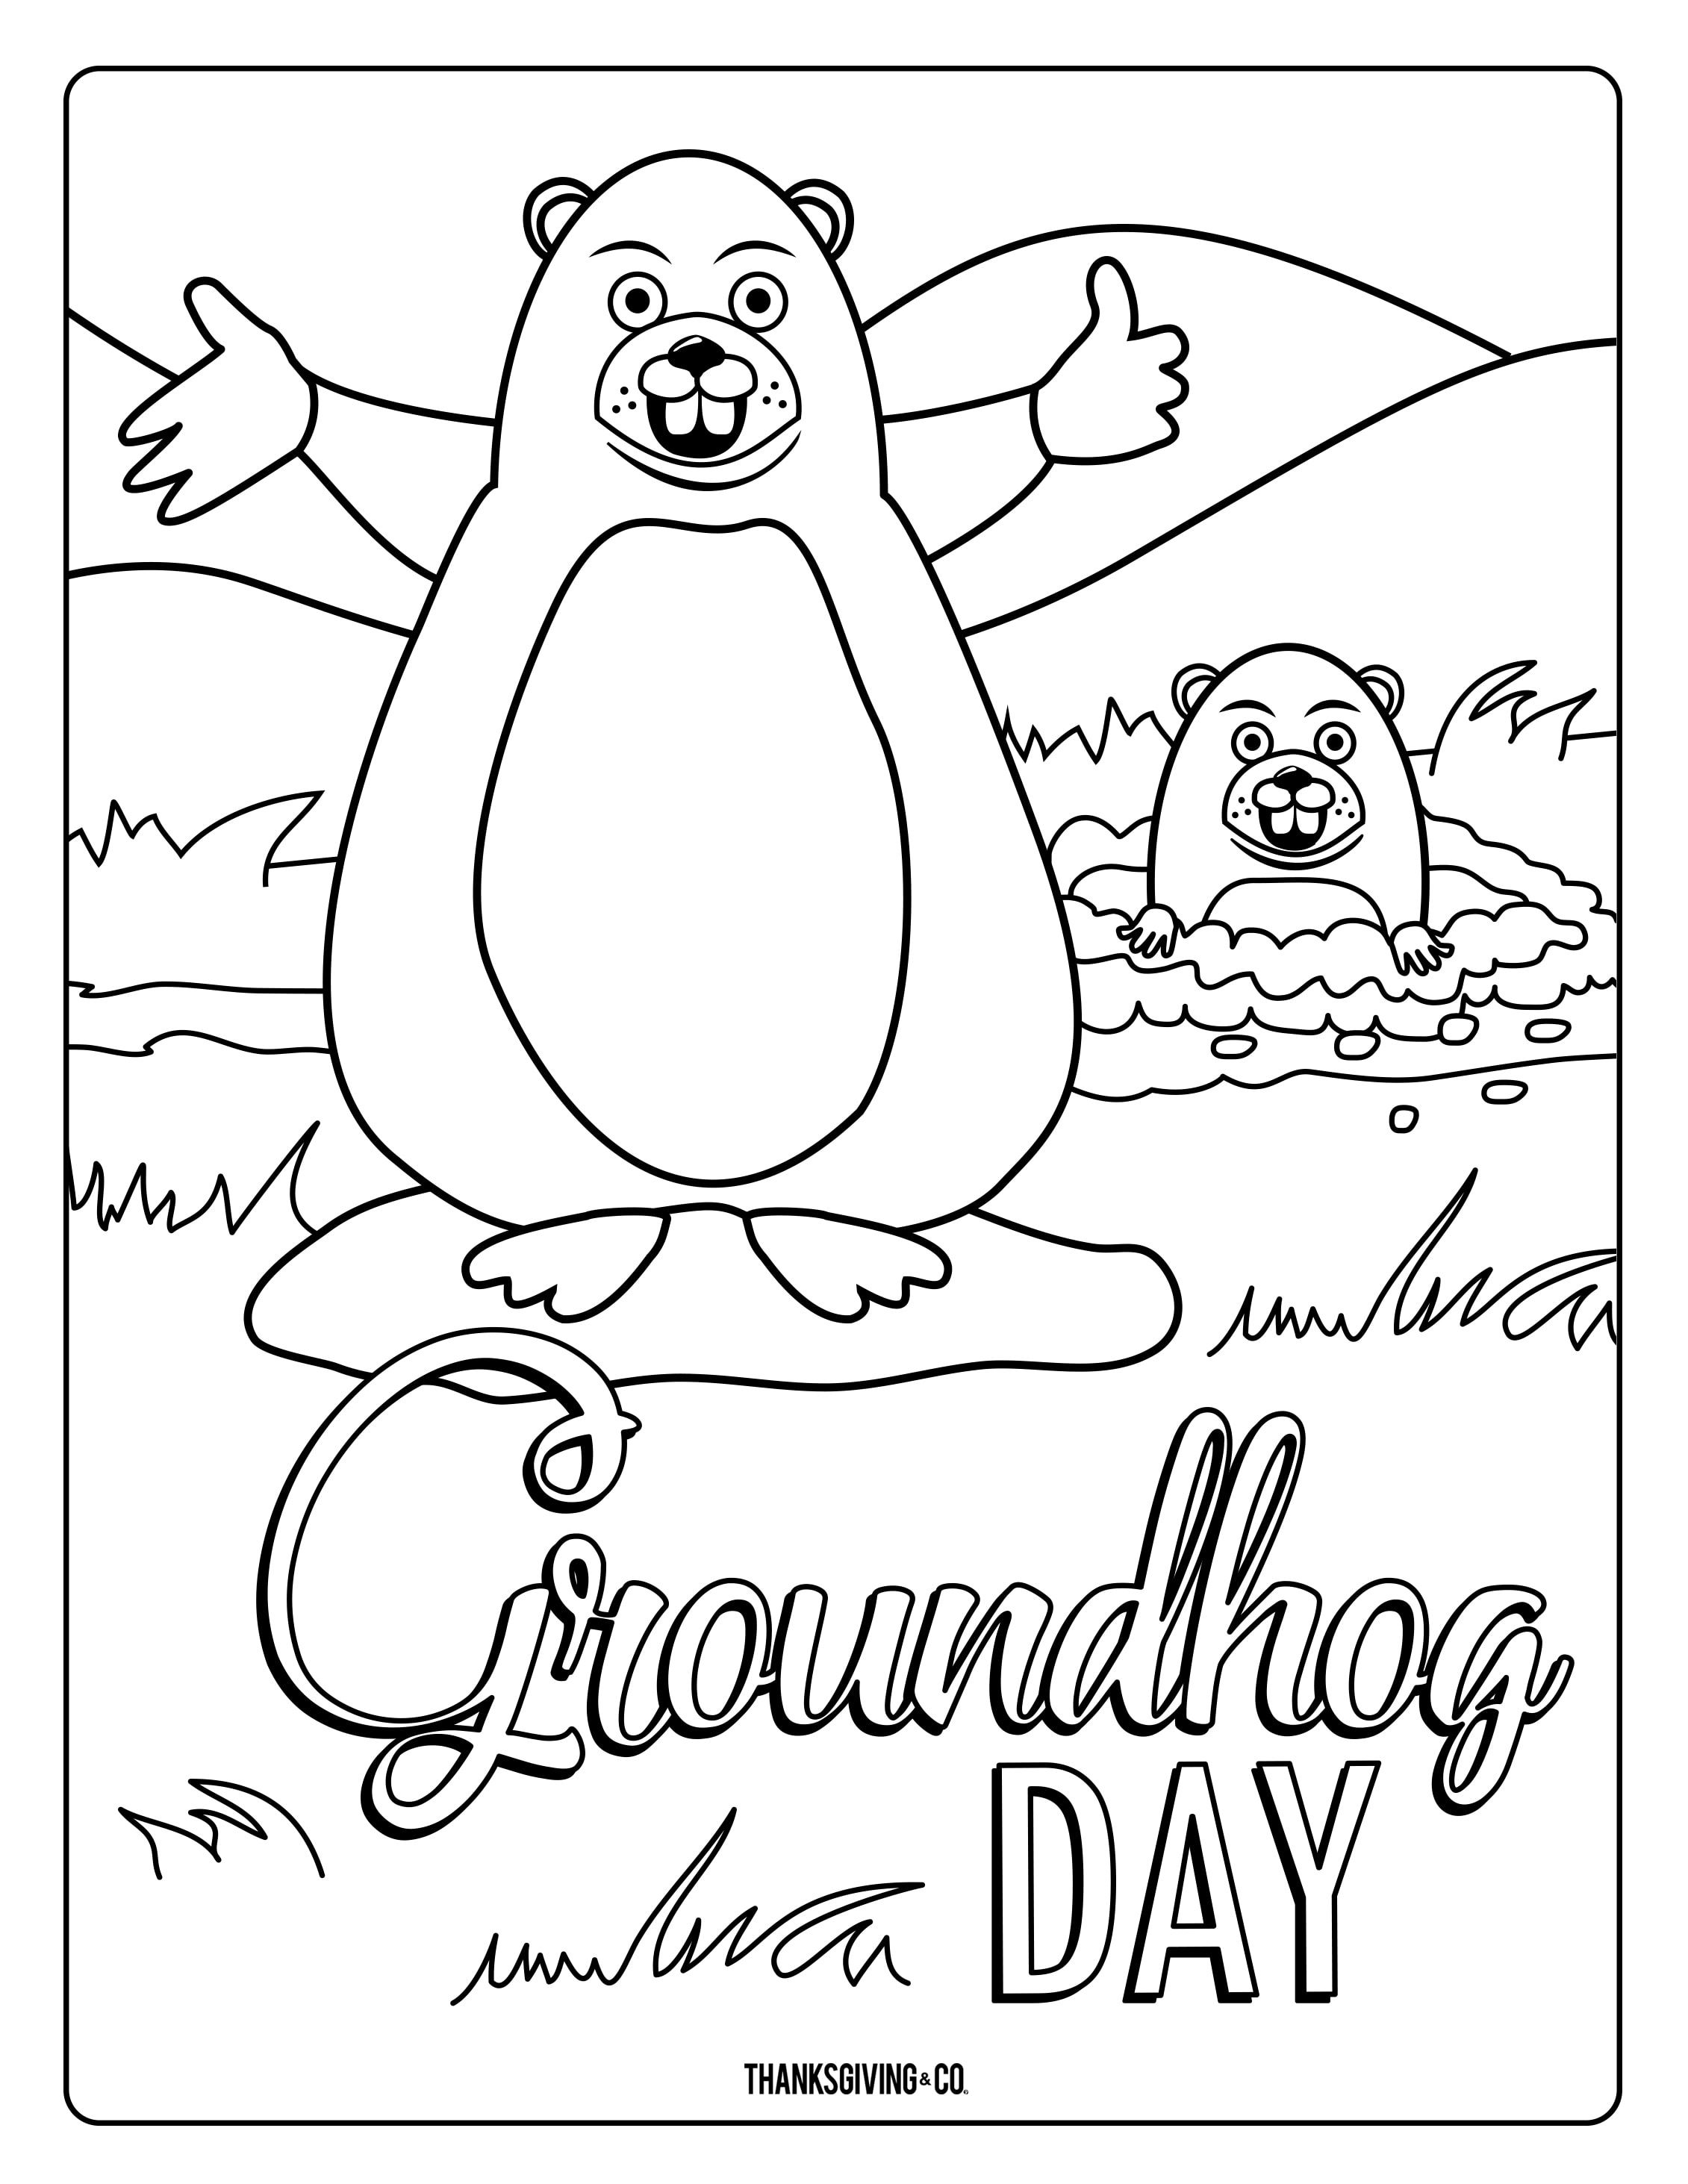 Groundhog Coloring Pages Coloring Pages For Kids Printable Coloring Pages [ 2926 x 2261 Pixel ]